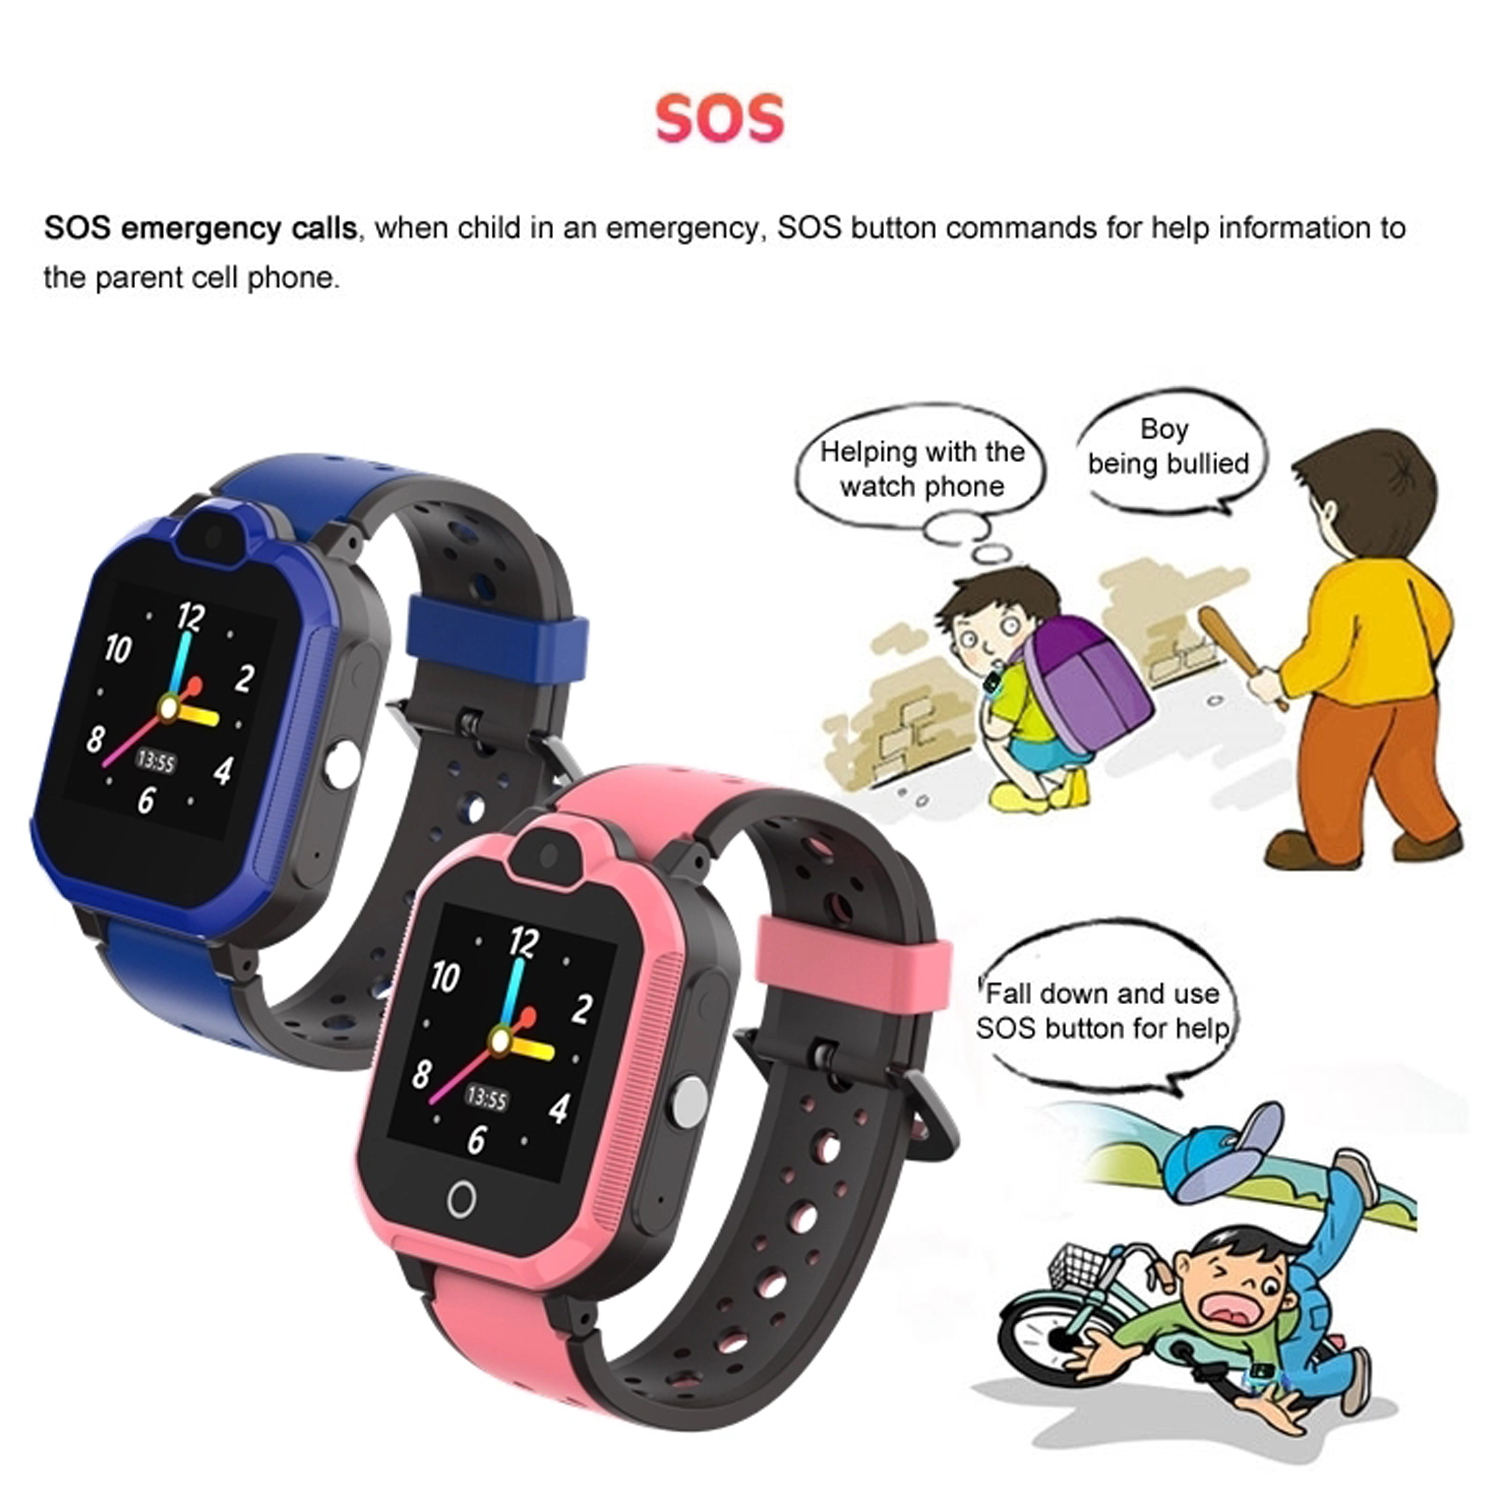 4G Waterproof Video Call GPS Smart Watch Device with CE approved D43